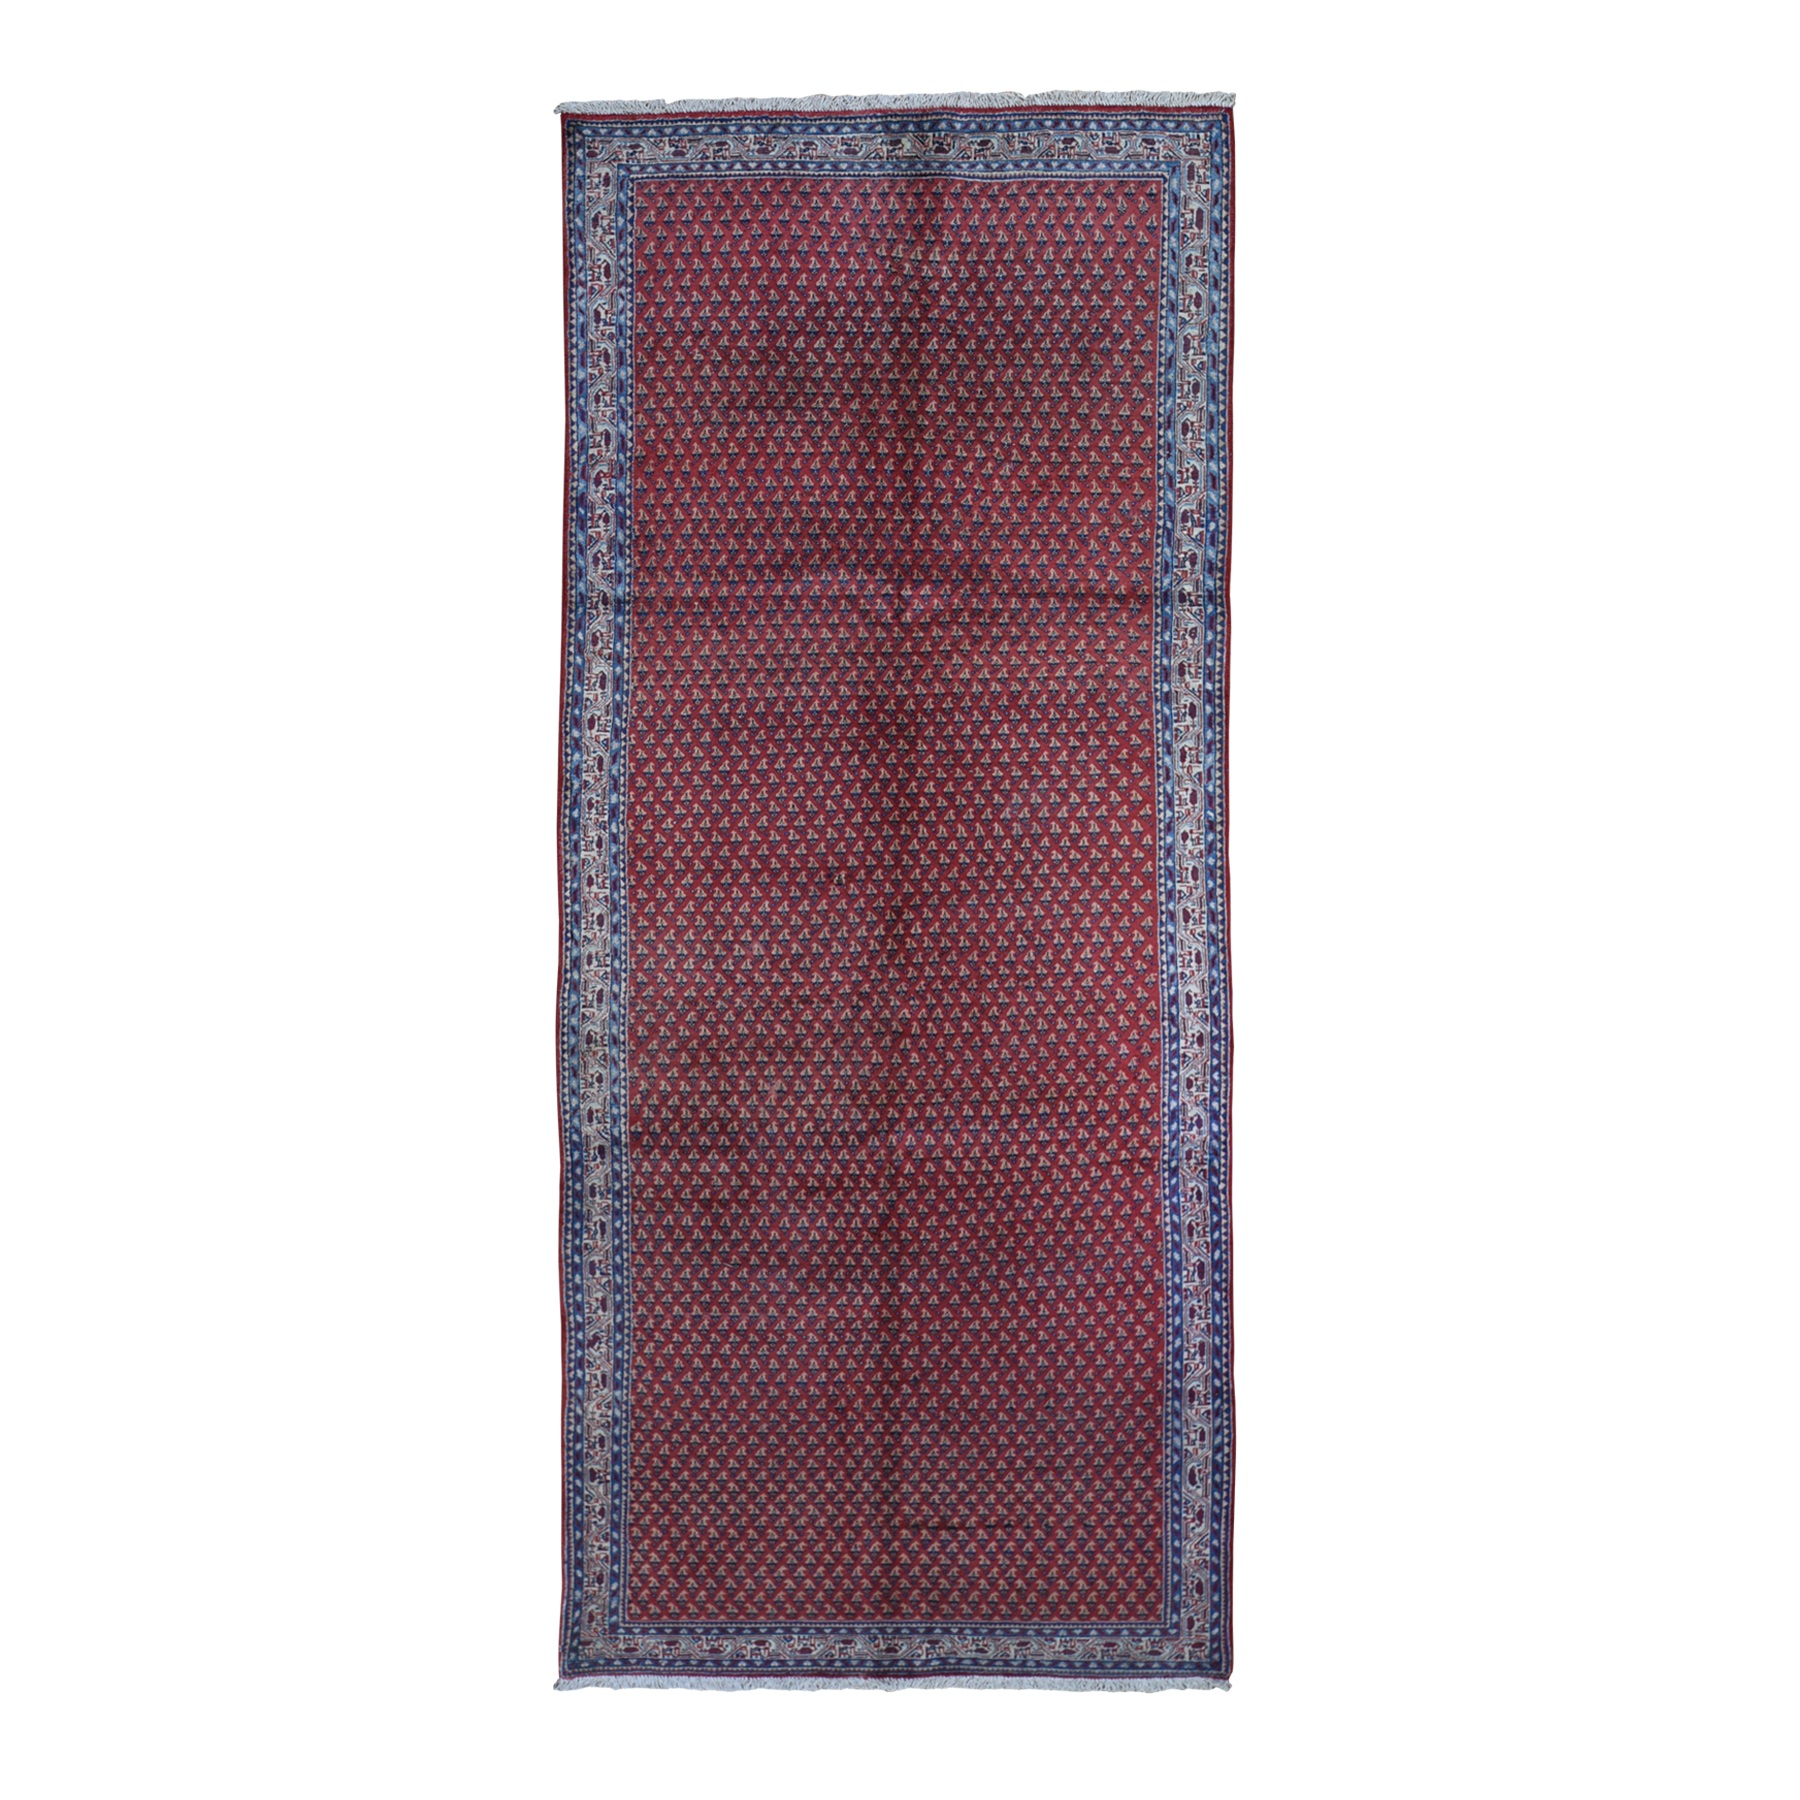 """4'6""""x10'9"""" Vintage Persian Serab Runner All Over Repetitive Design Natural Wool Hand Knotted Good Condition Clean Oriental Rug"""